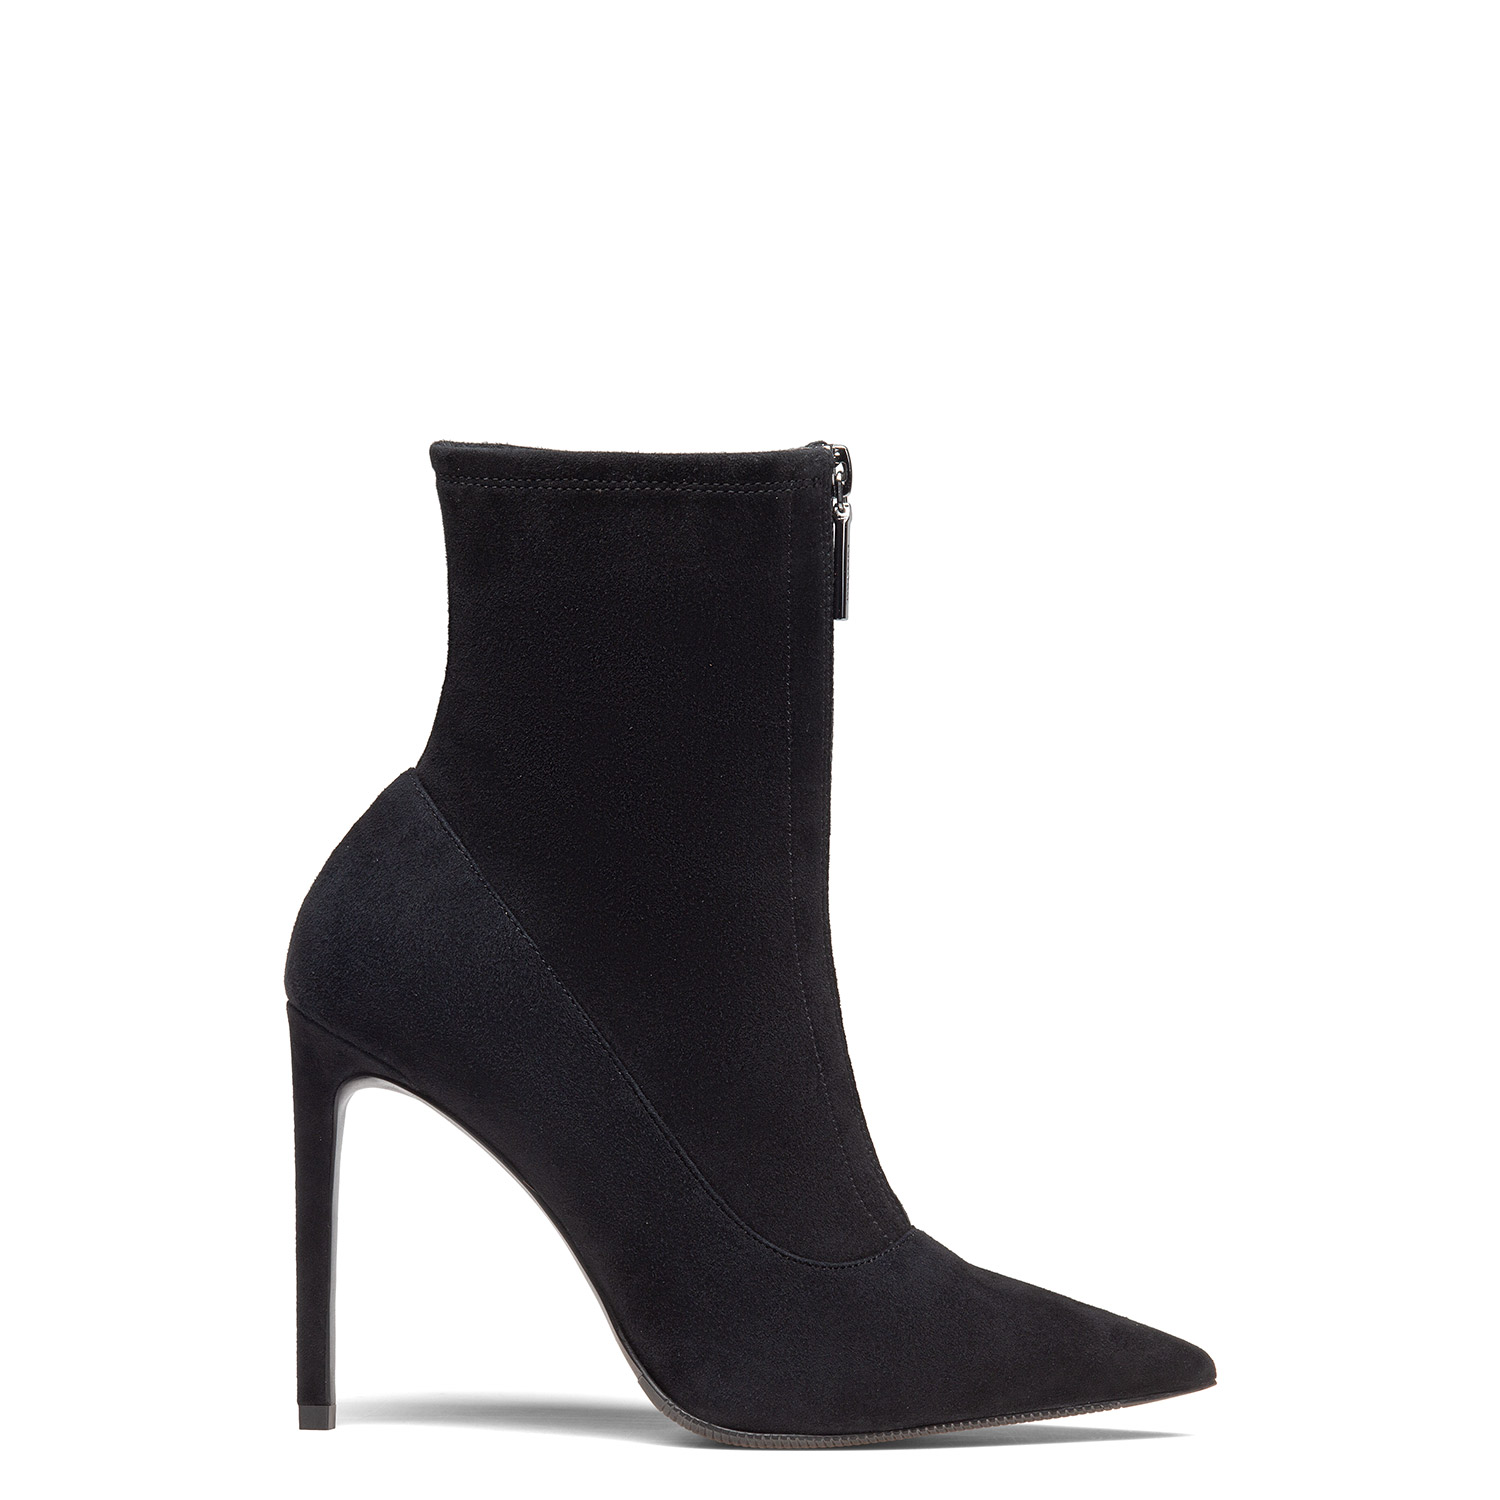 Women's ankle boots PAZOLINI WN-ROC15-1